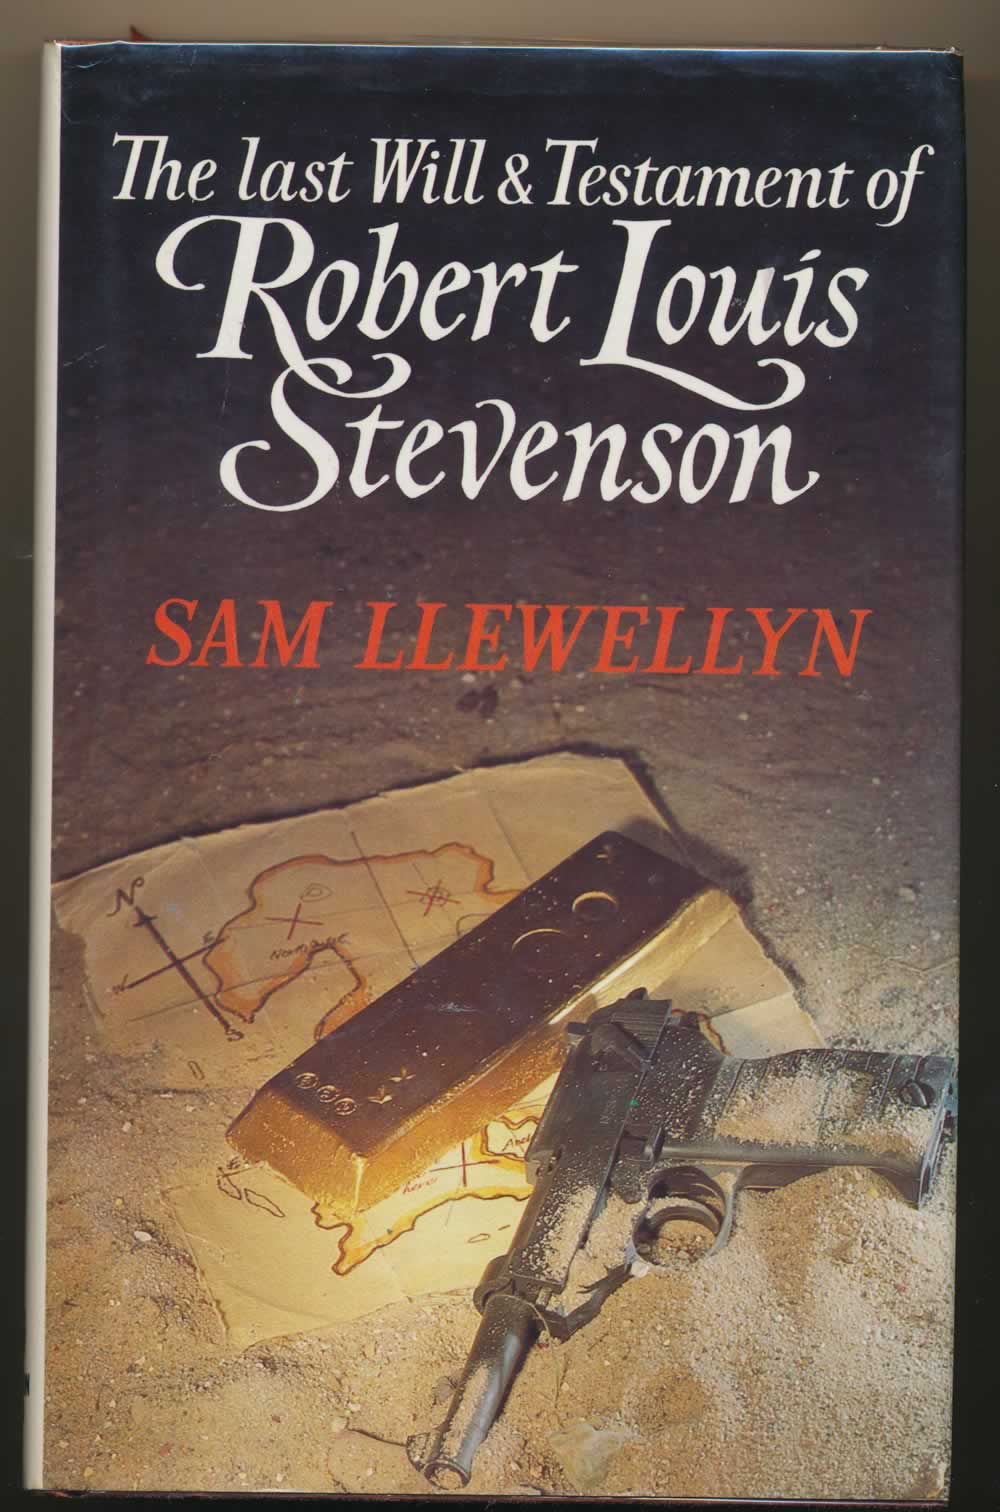 The last will and testament of Robert Louis Stevenson